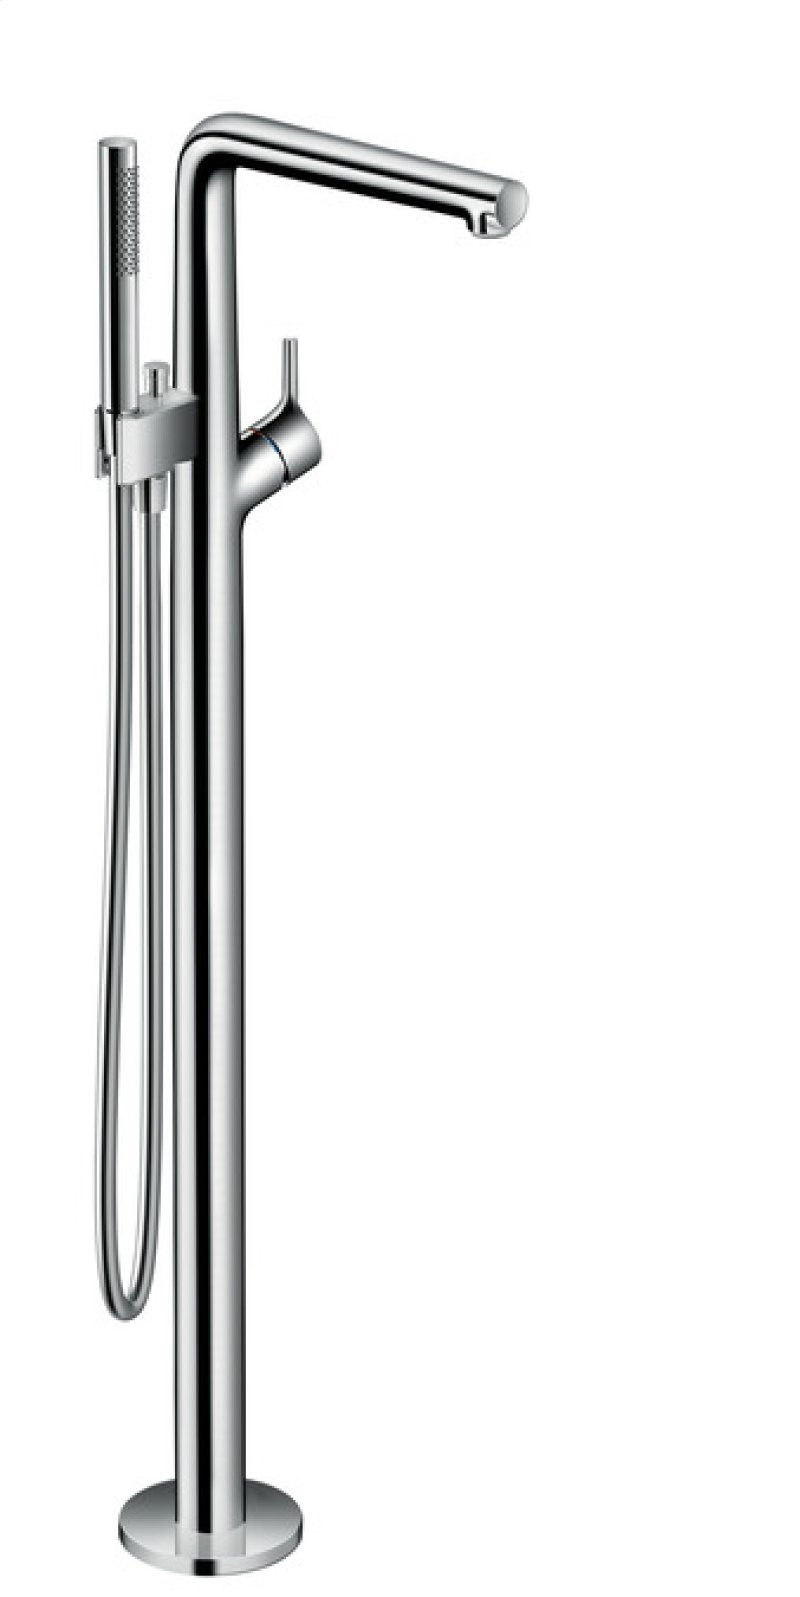 72412001 in Chrome by Hansgrohe in Atlanta, GA - Chrome Talis S ...